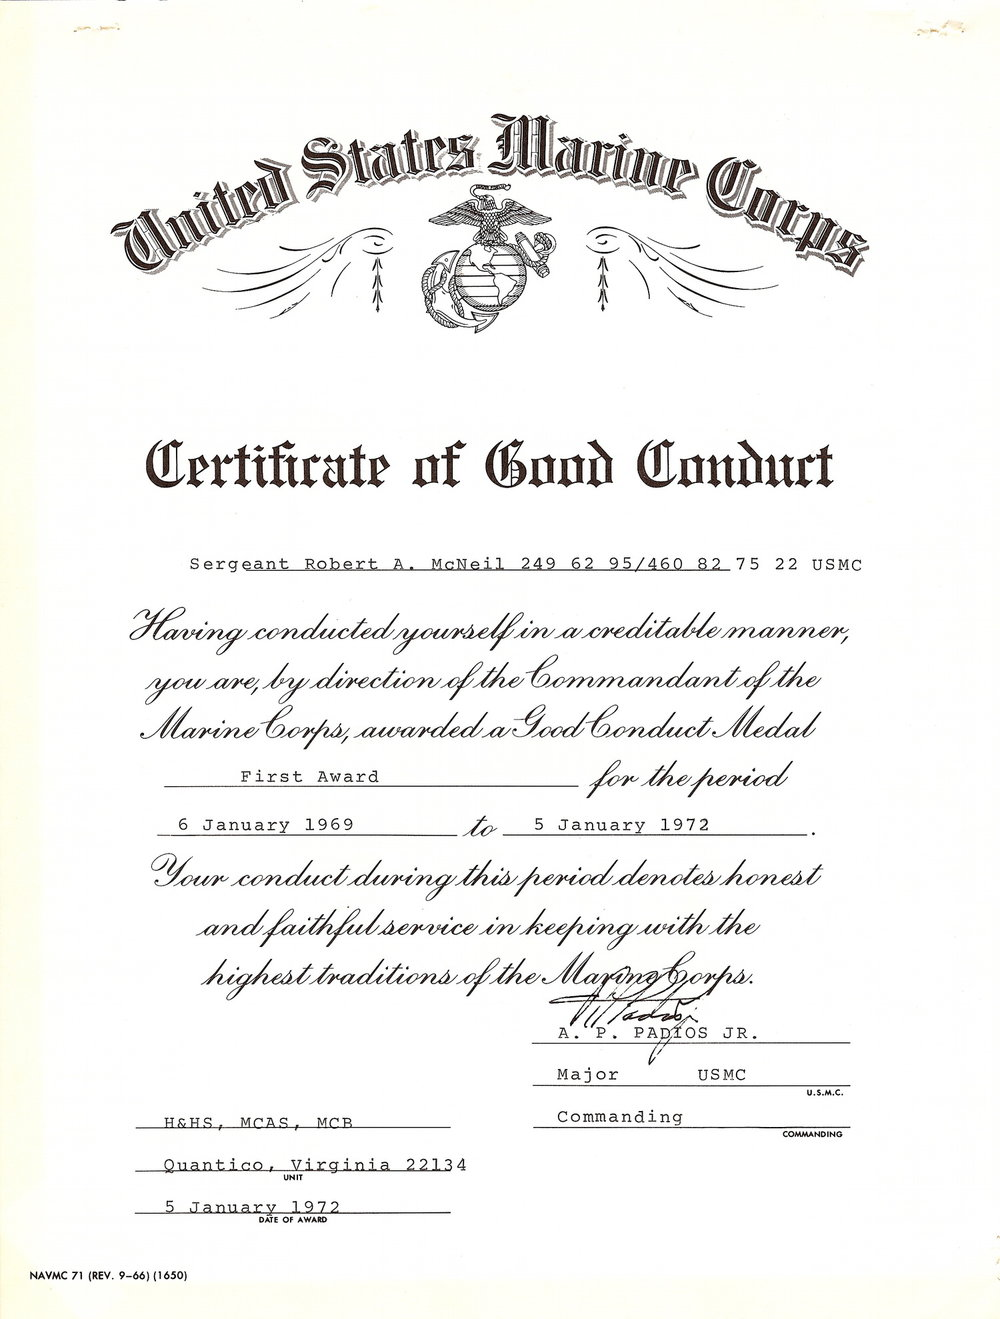 Bob McNeil - January 5, 1972 - Age 22 - U.S. Marine Corps - Certificate of Good Conduct